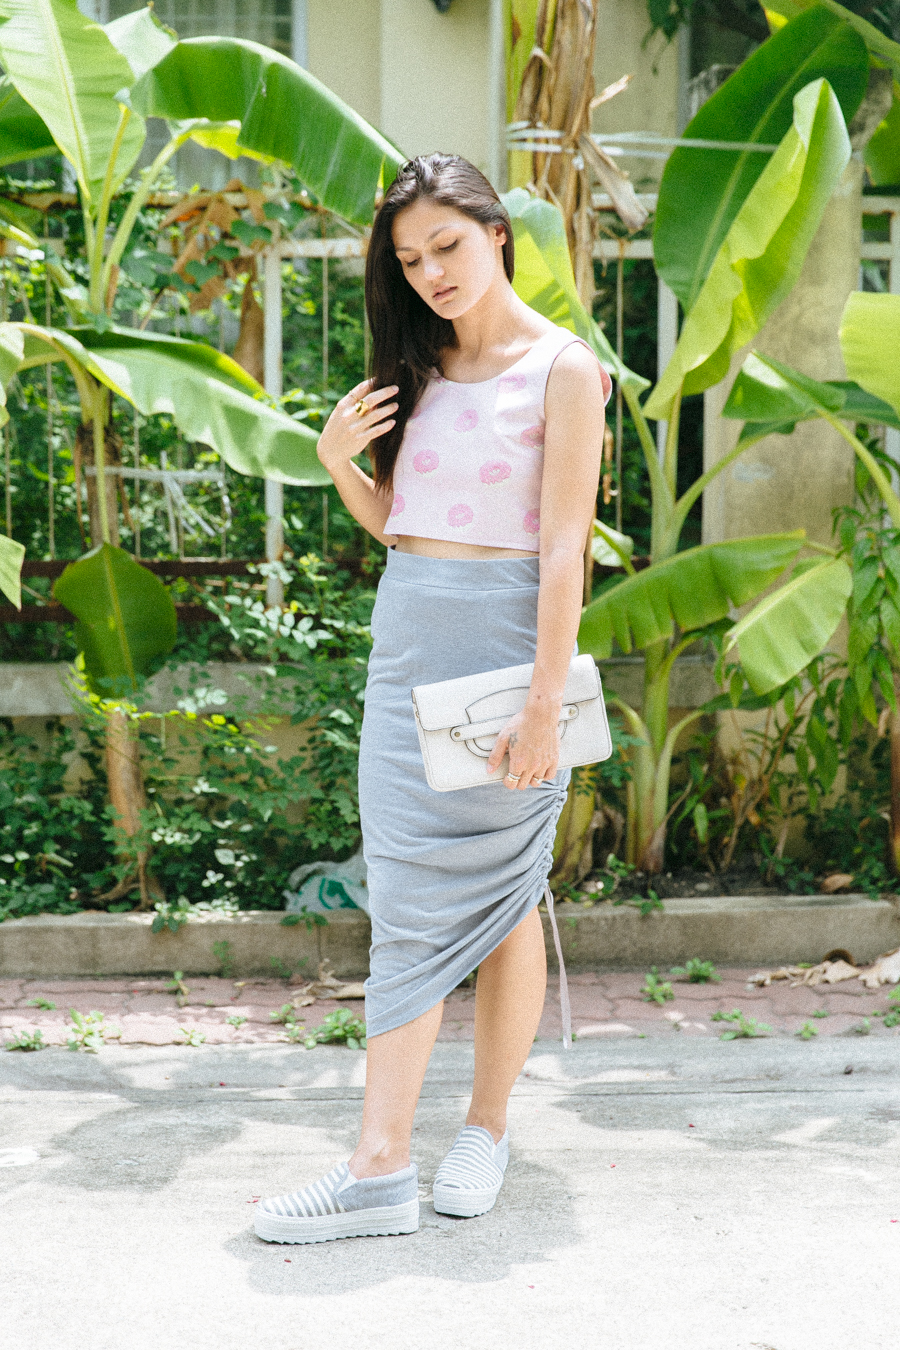 Kawaii crop top from Terminal 21 in Bangkok & grey draped skirt from POL clothing.